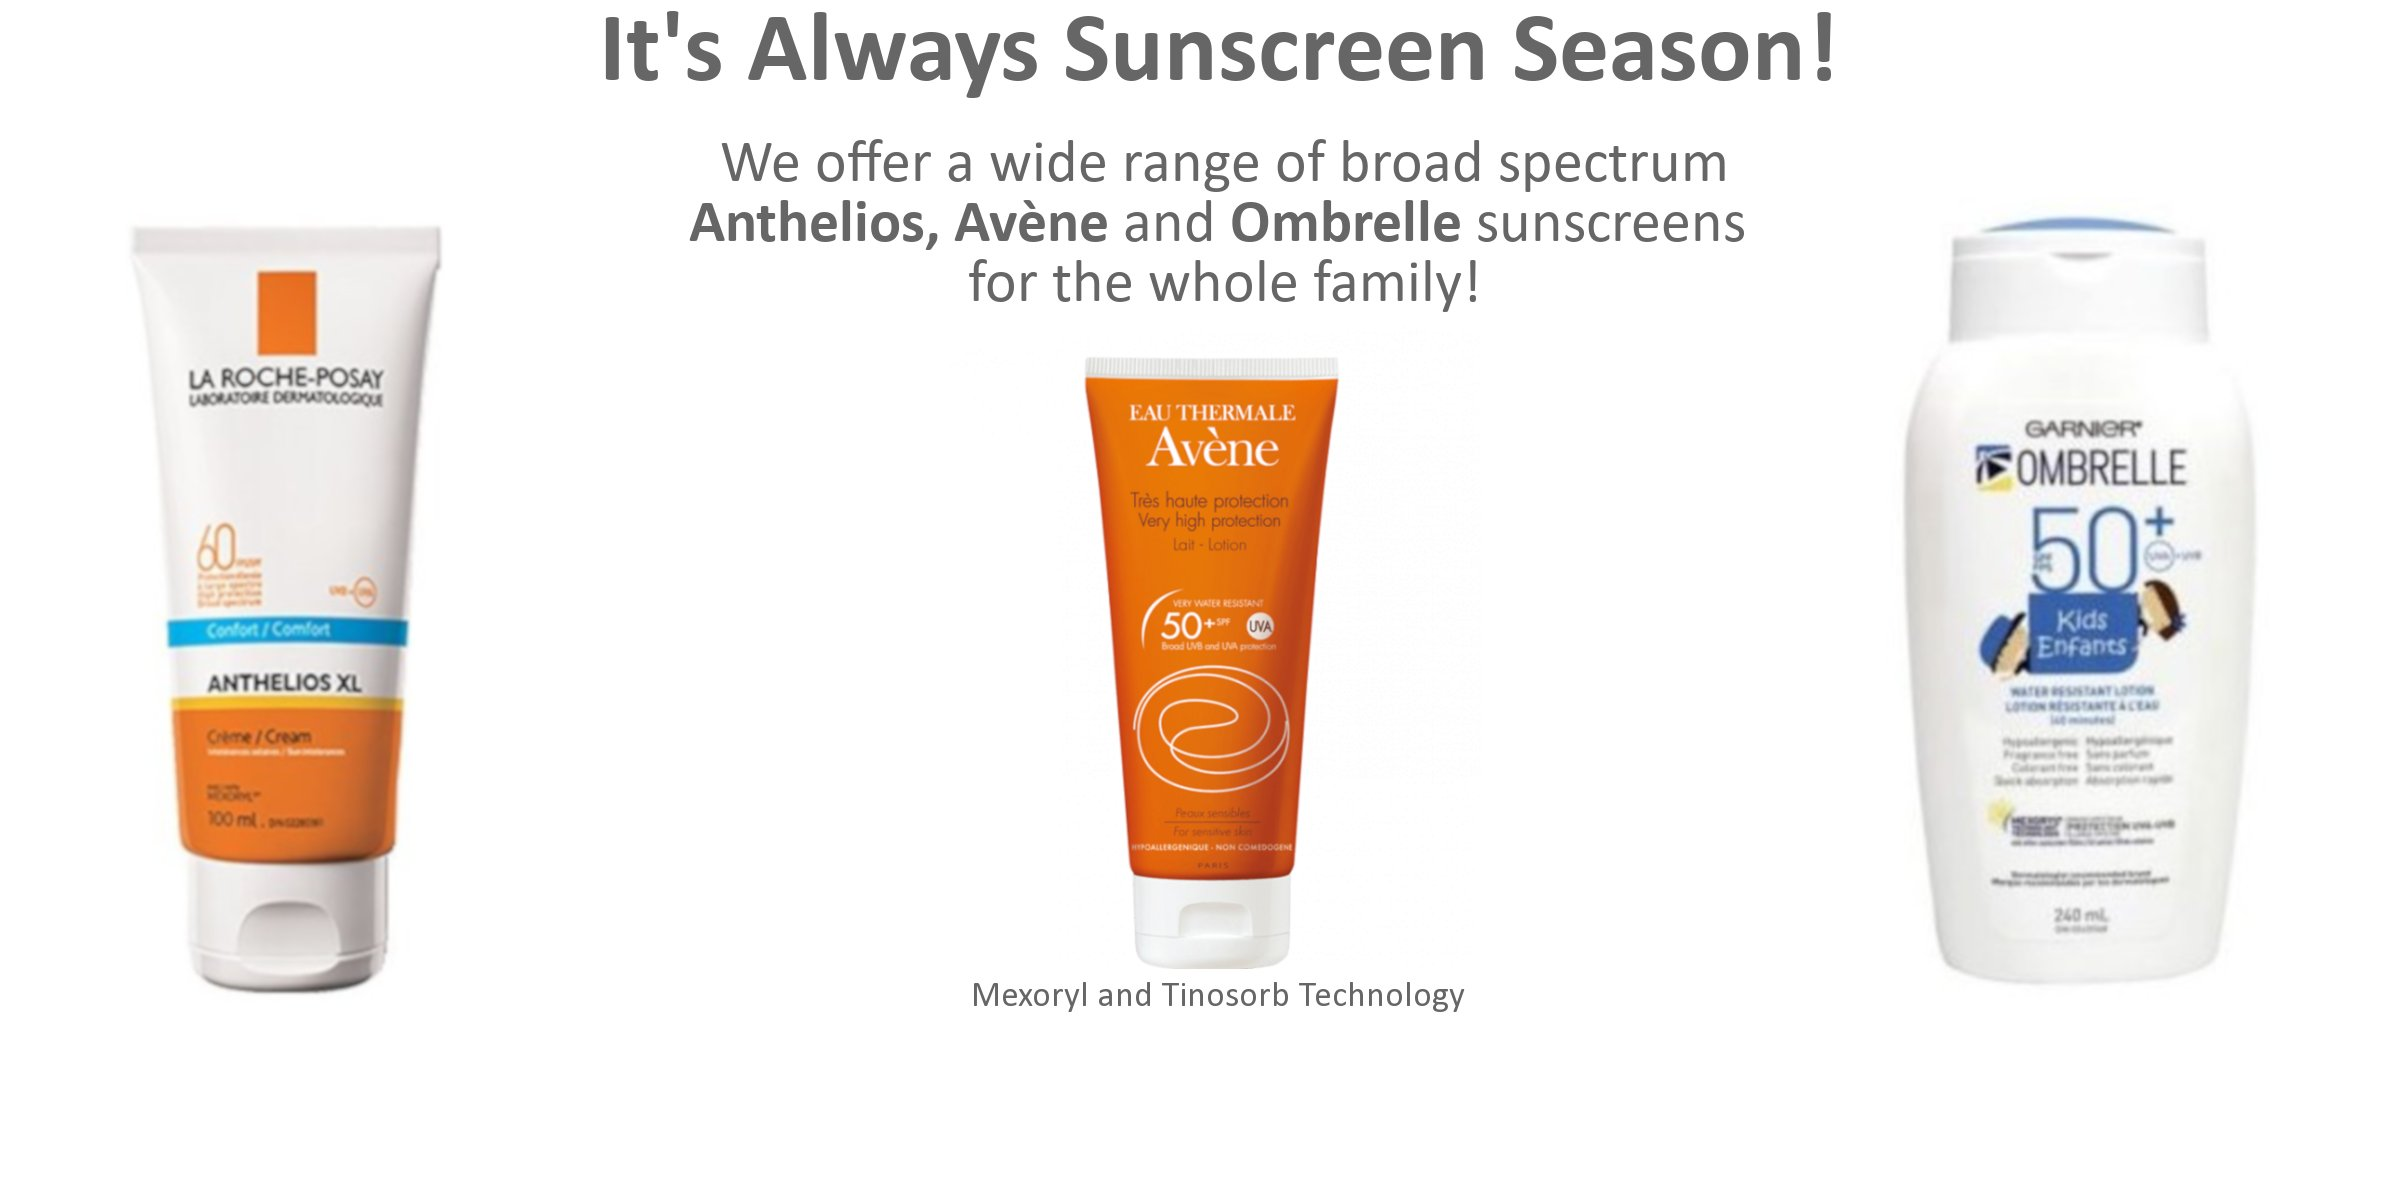 It's Always Sunscreen Season!